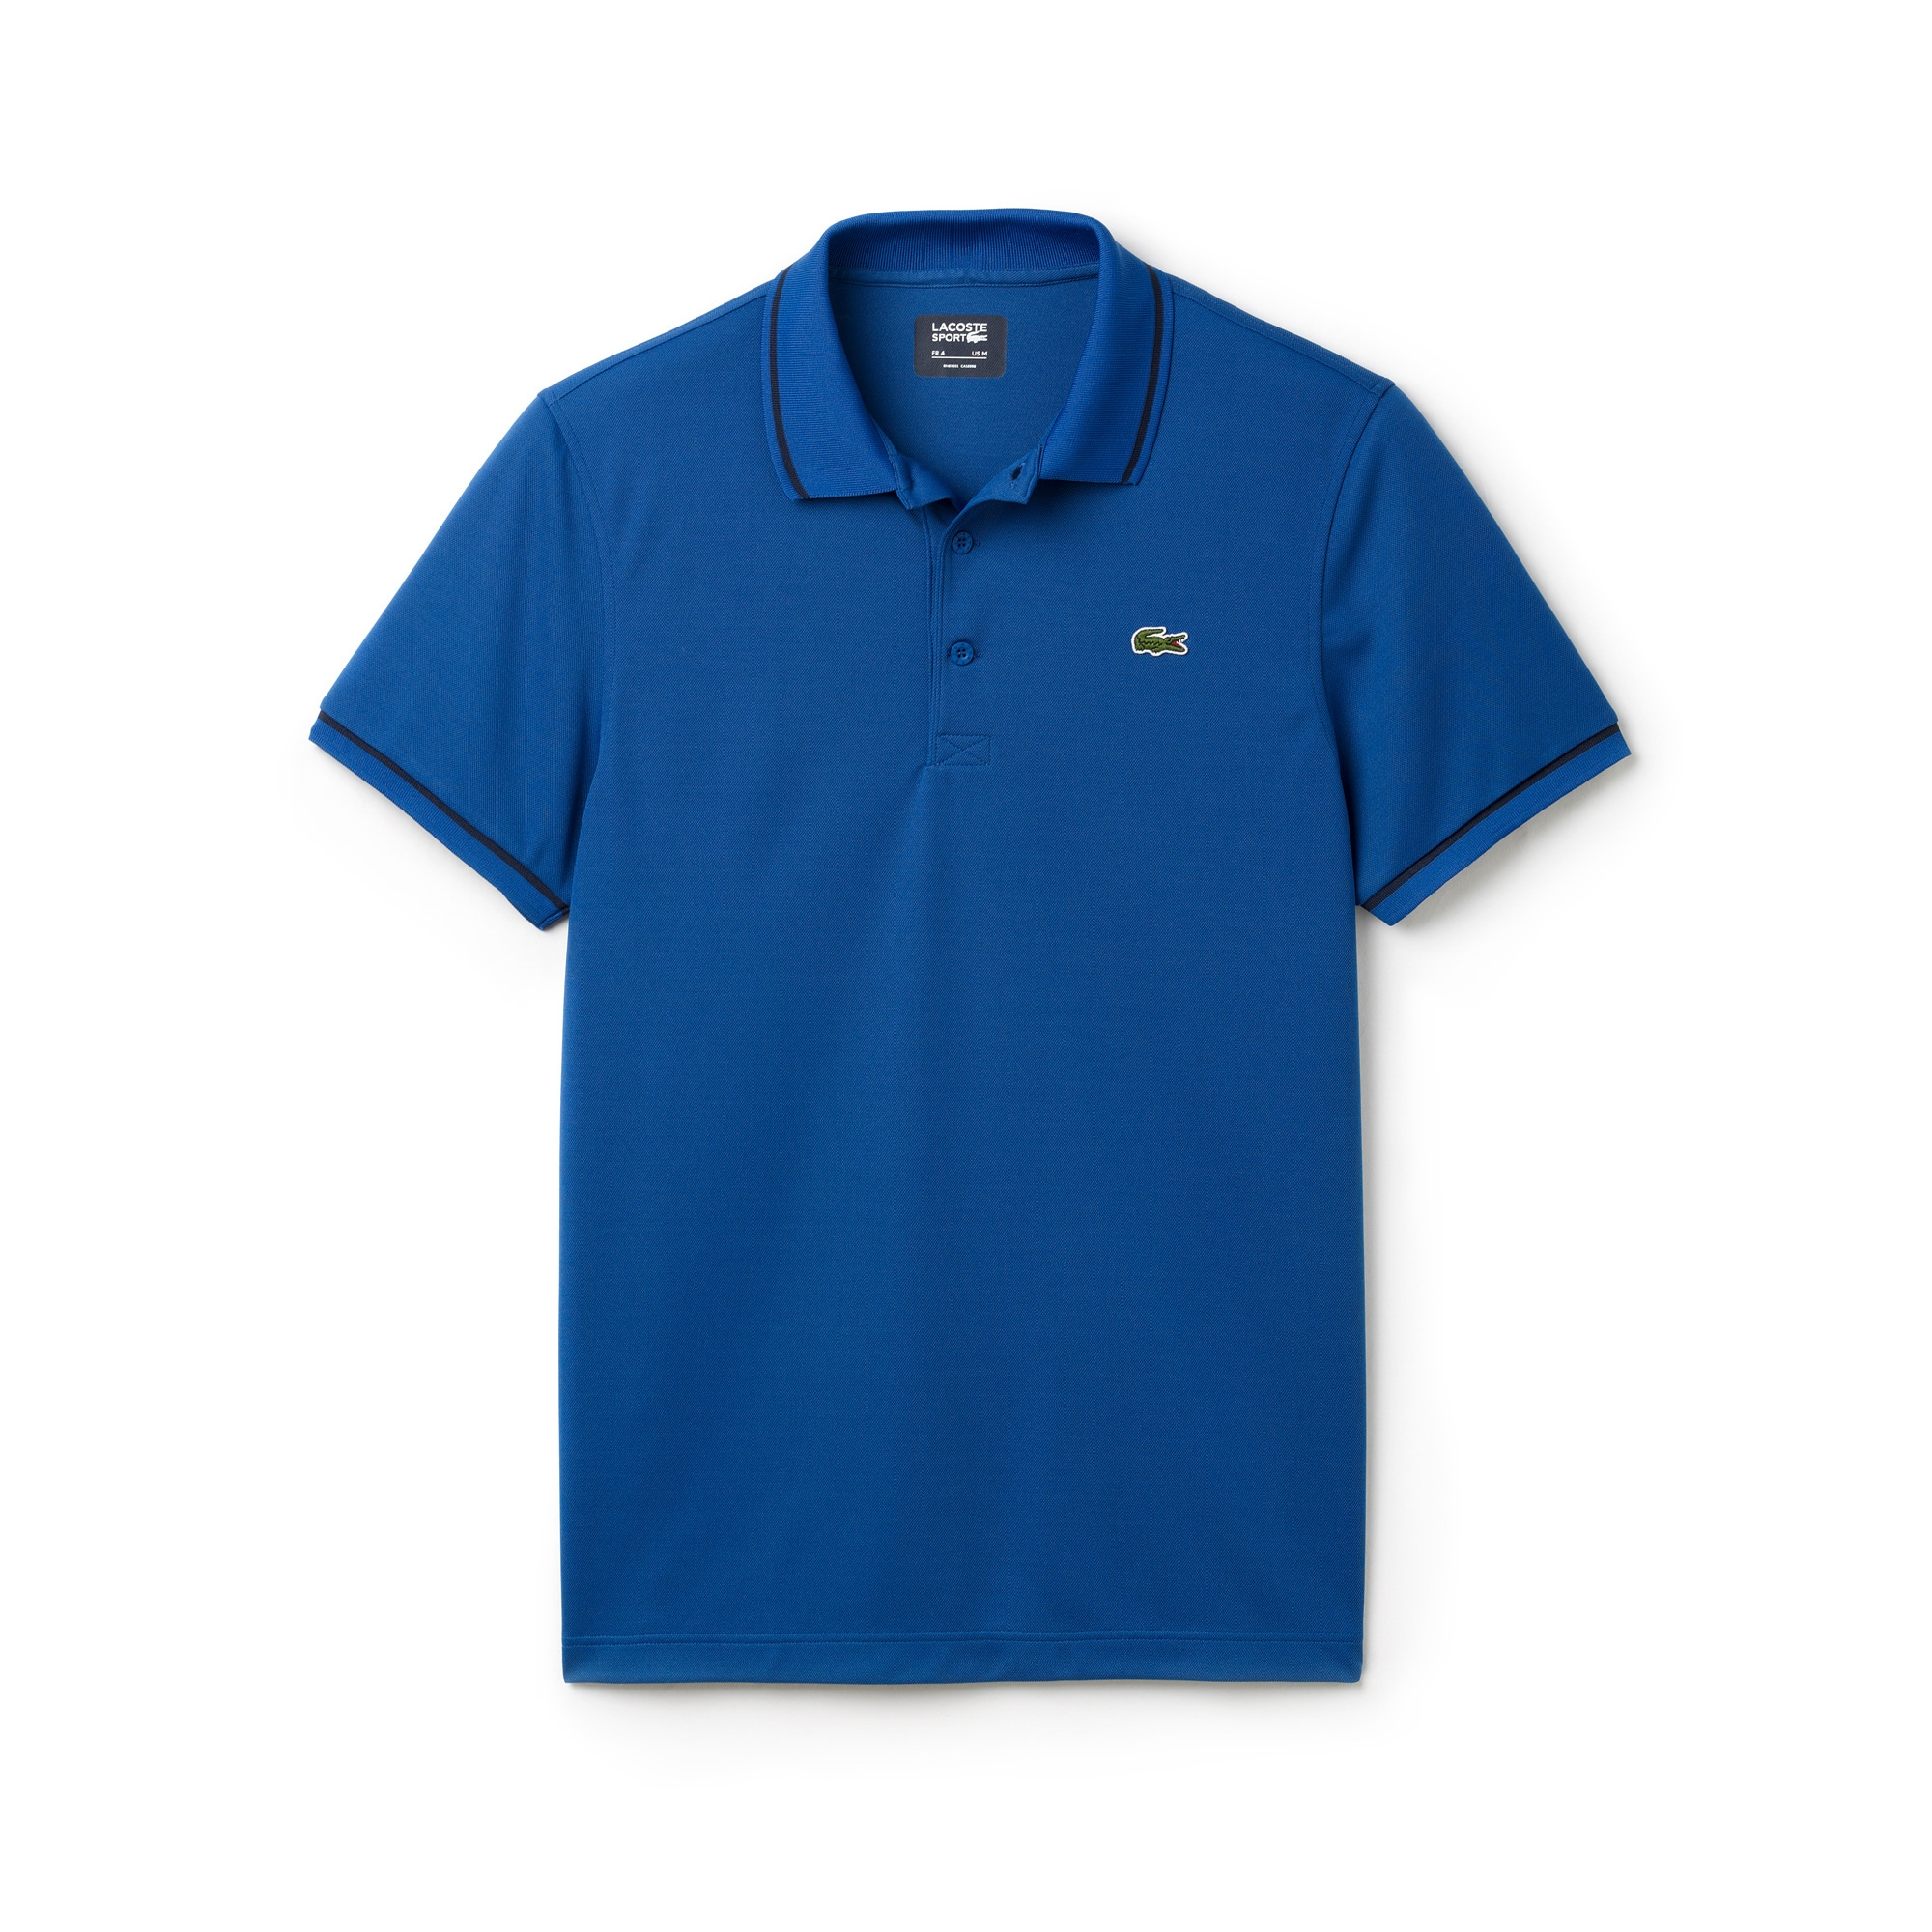 Men's Lacoste SPORT Tennis Piped Technical Piqué Polo